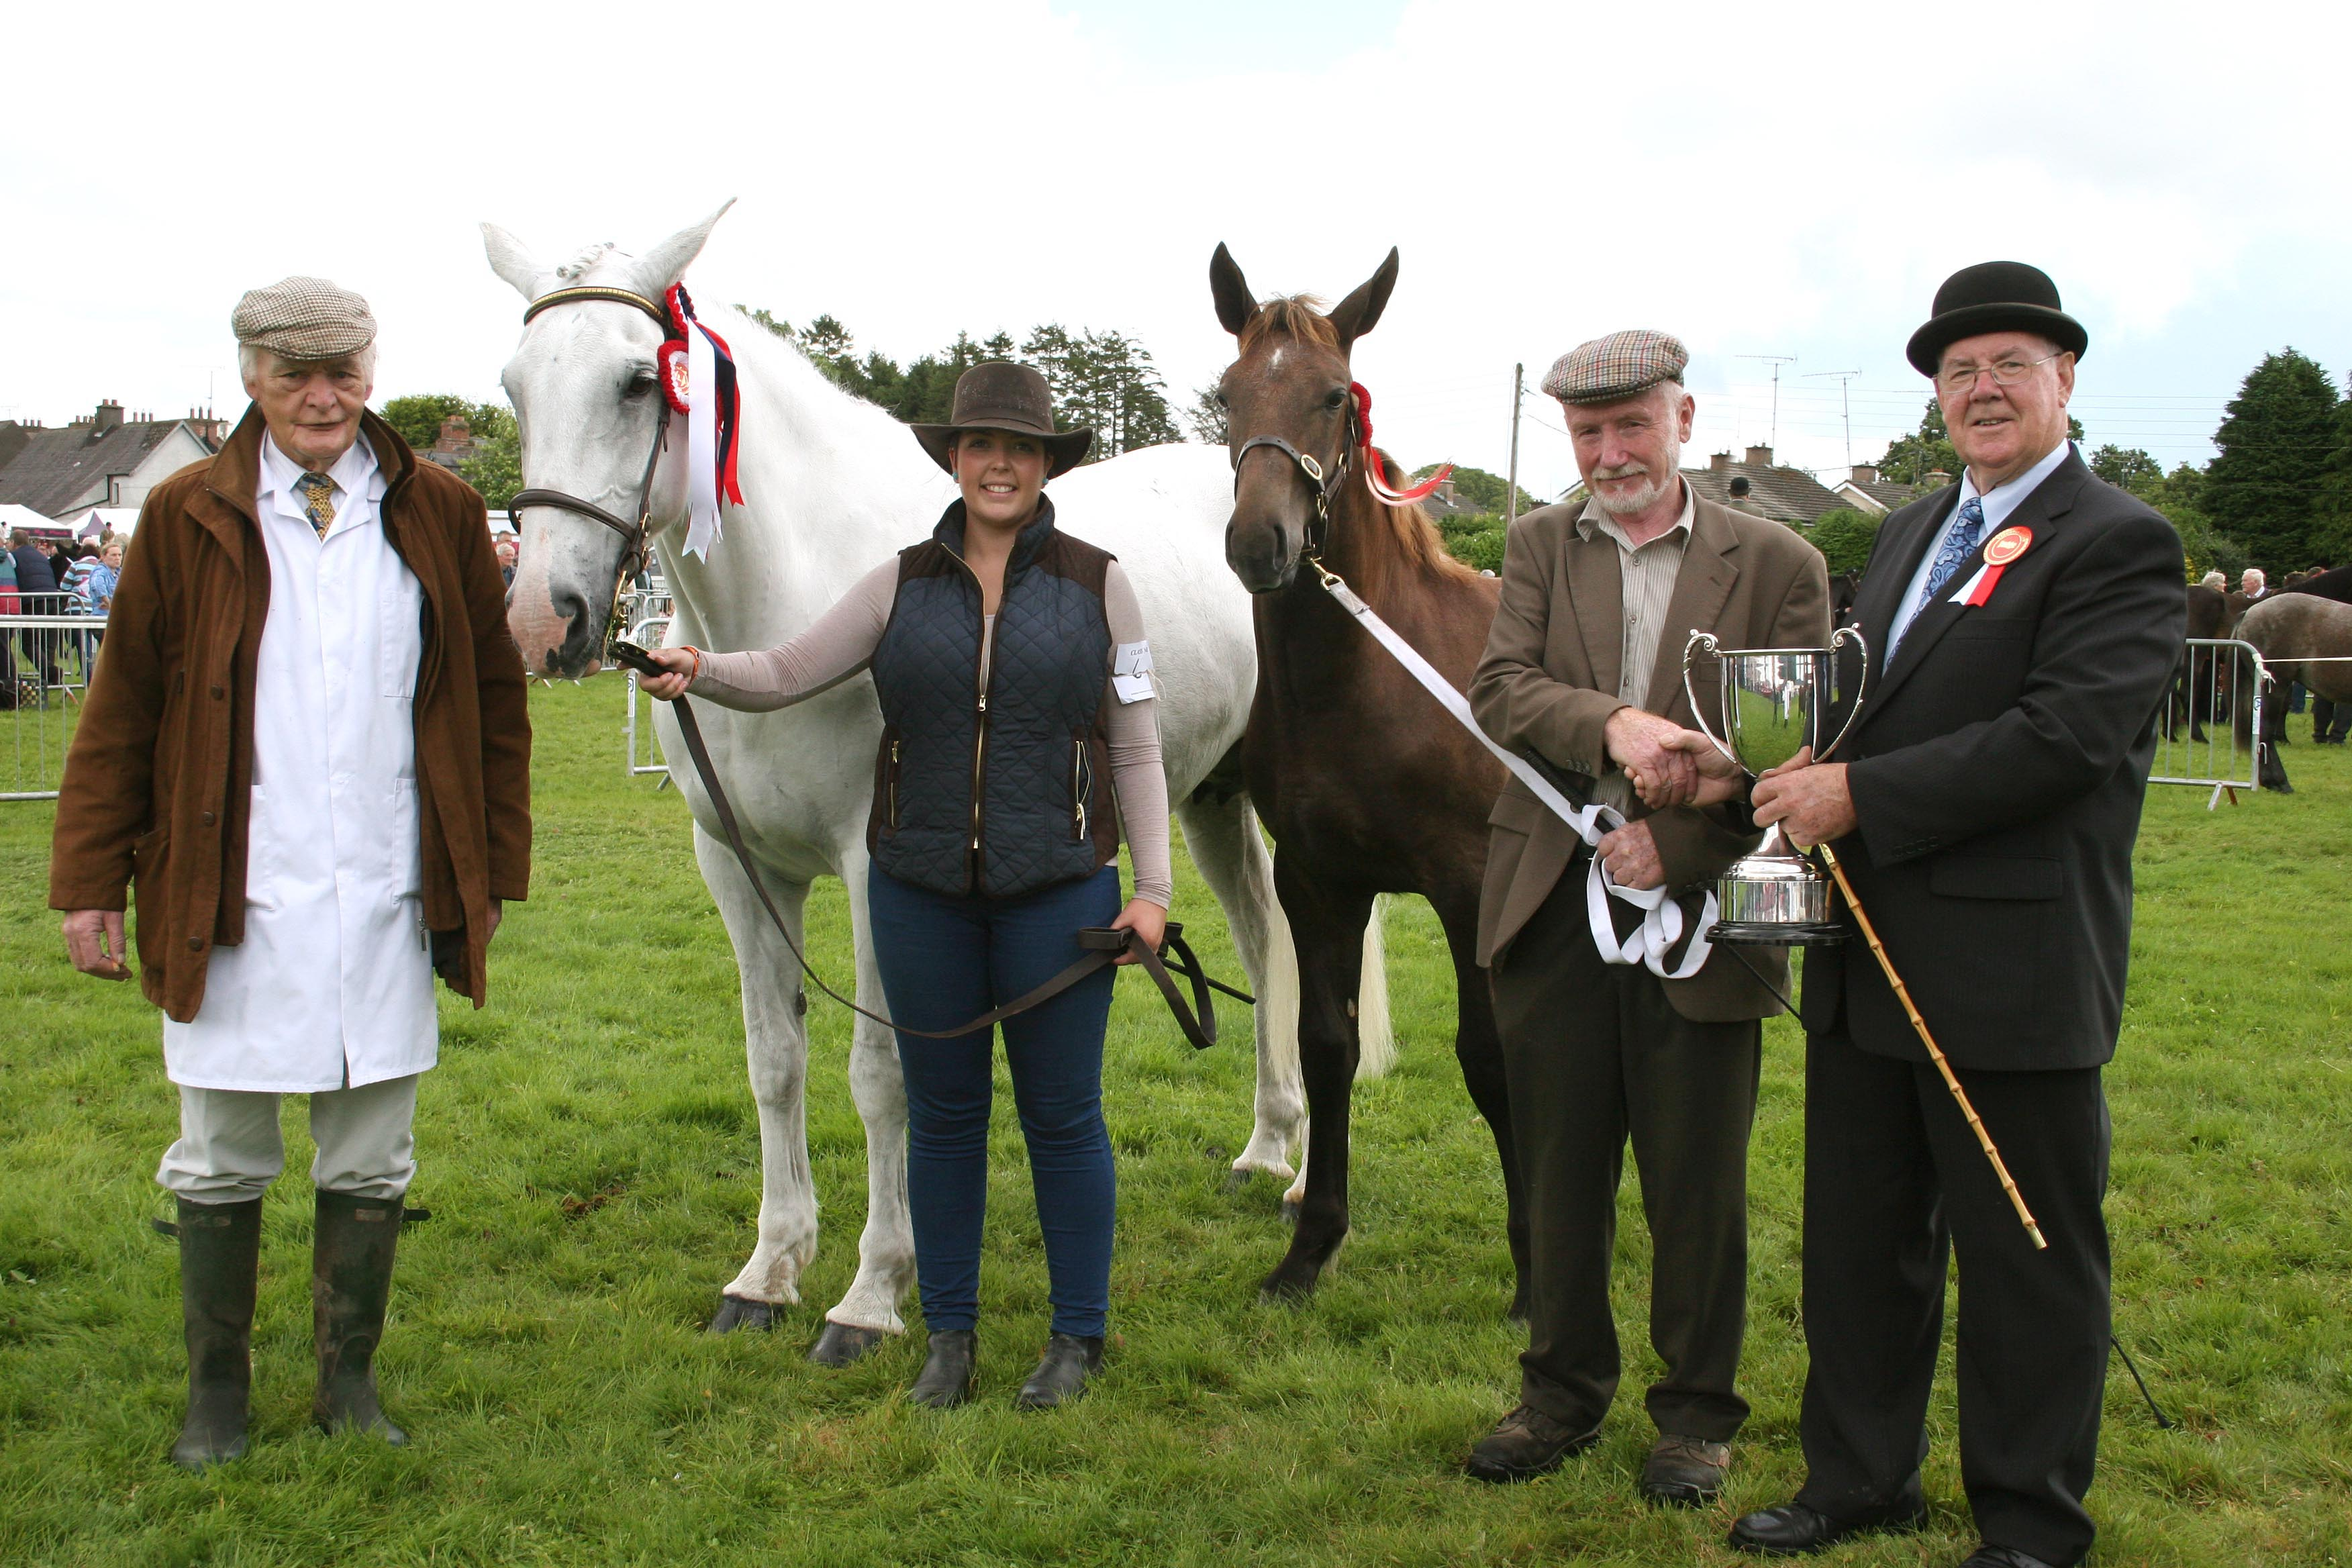 Champion Brood Mare winner at Virginia Show was James Heary with Julianne Corrigan and steward Terry Dunne